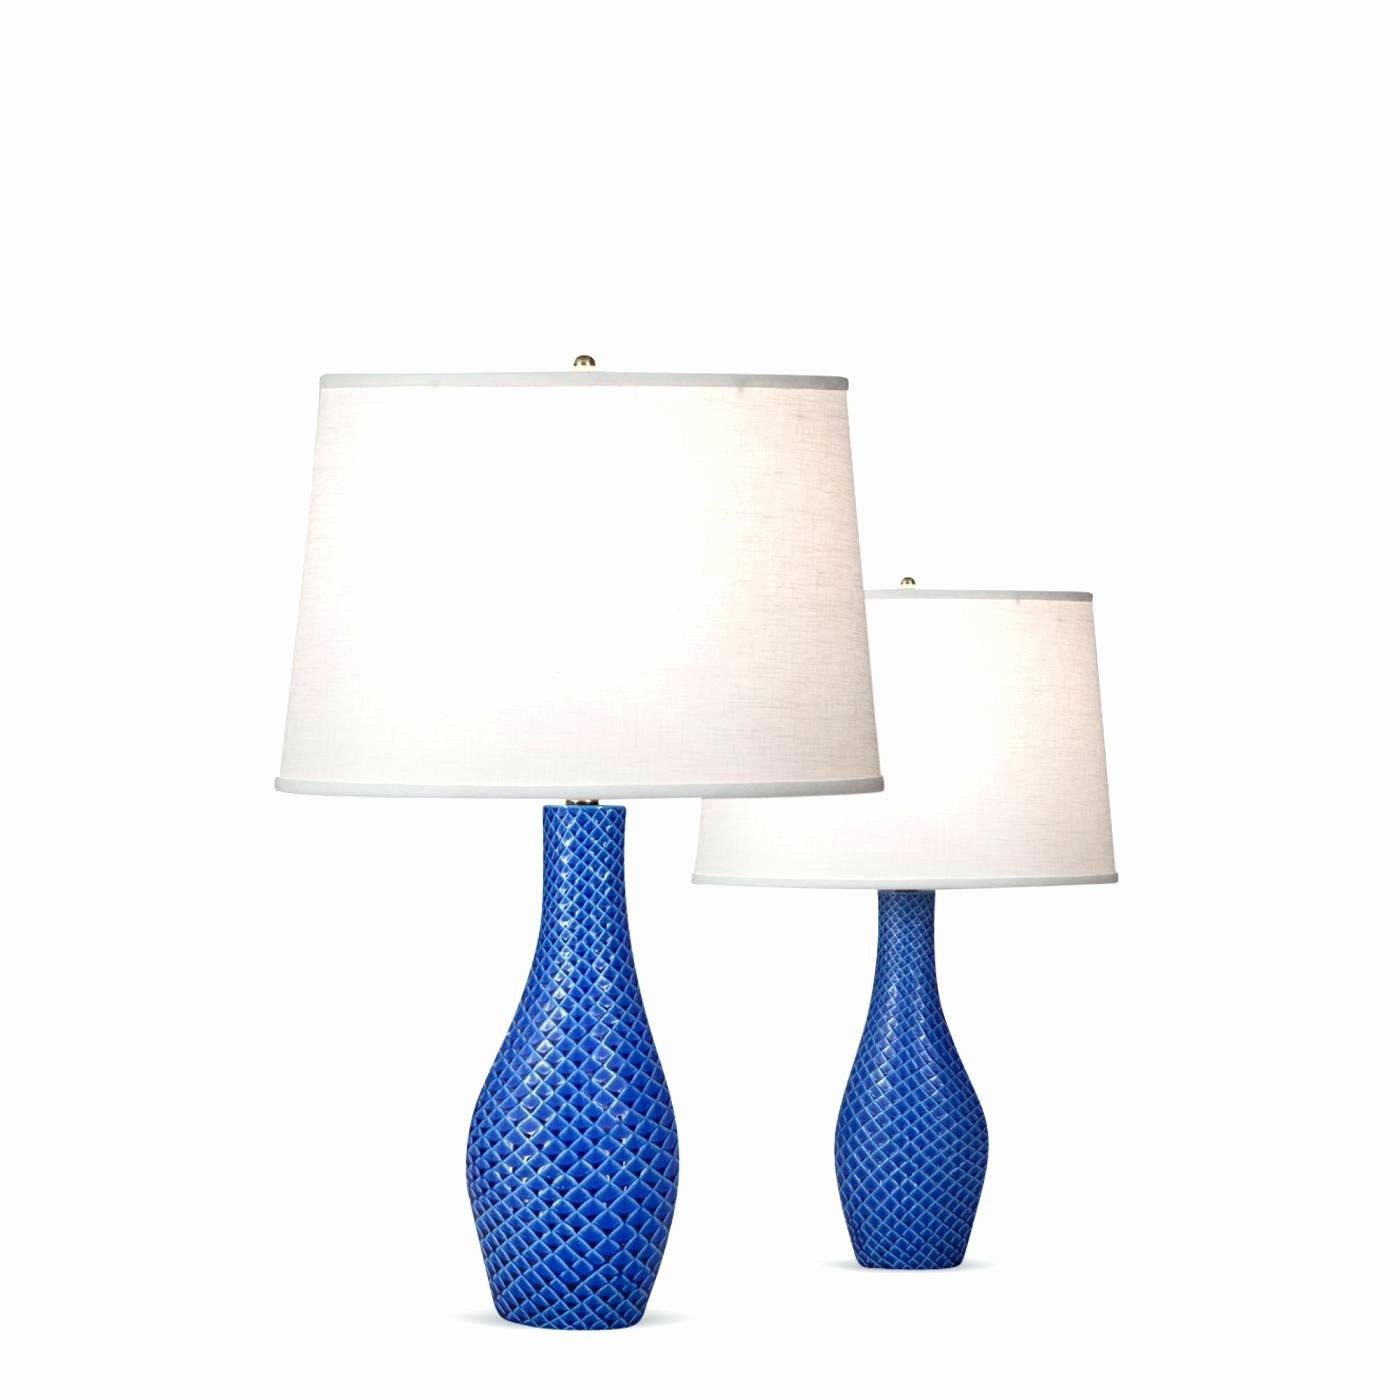 wholesale vases of big lamps best of current home colors in consort with living room in big lamps best of current home colors in consort with living room vases wholesale new